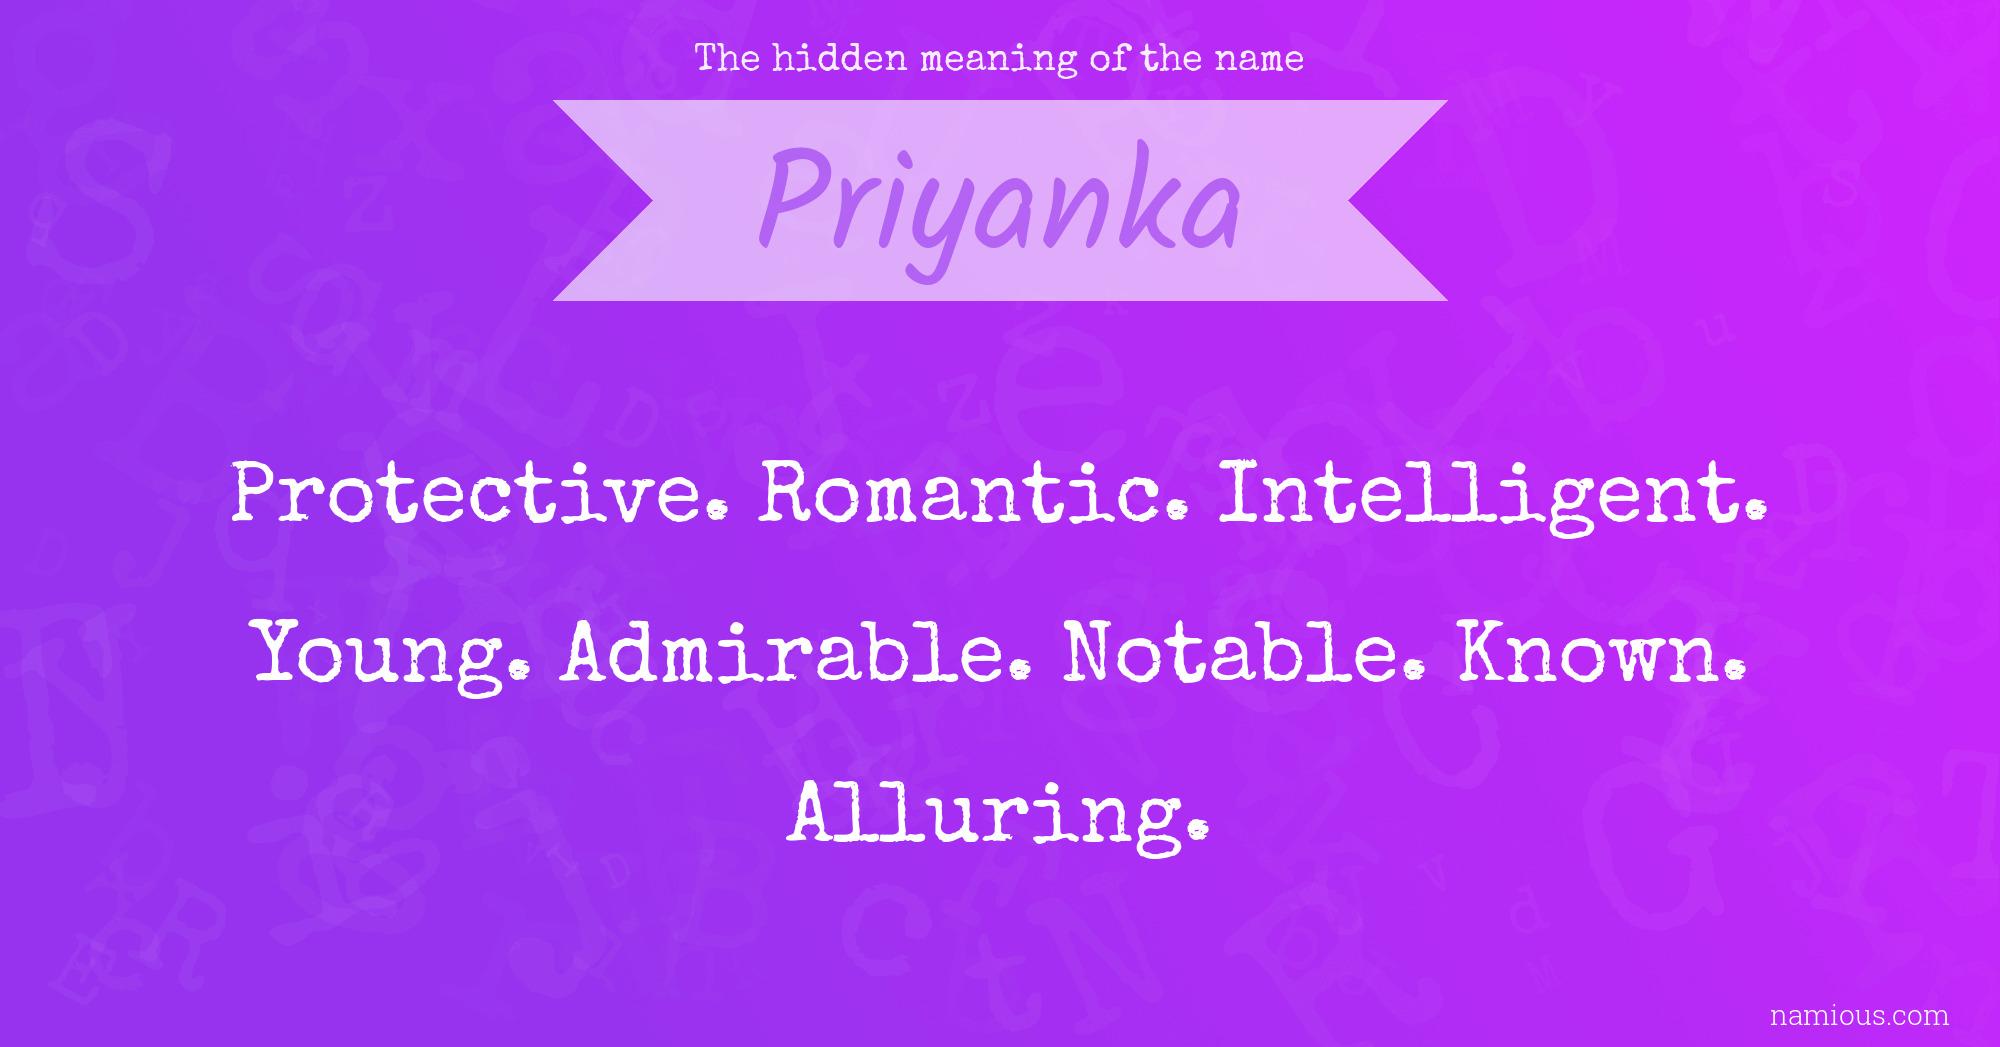 The Hidden Meaning Of The Name Priyanka Namious In the name priyanka , priya means love and anka means symbol. the hidden meaning of the name namious